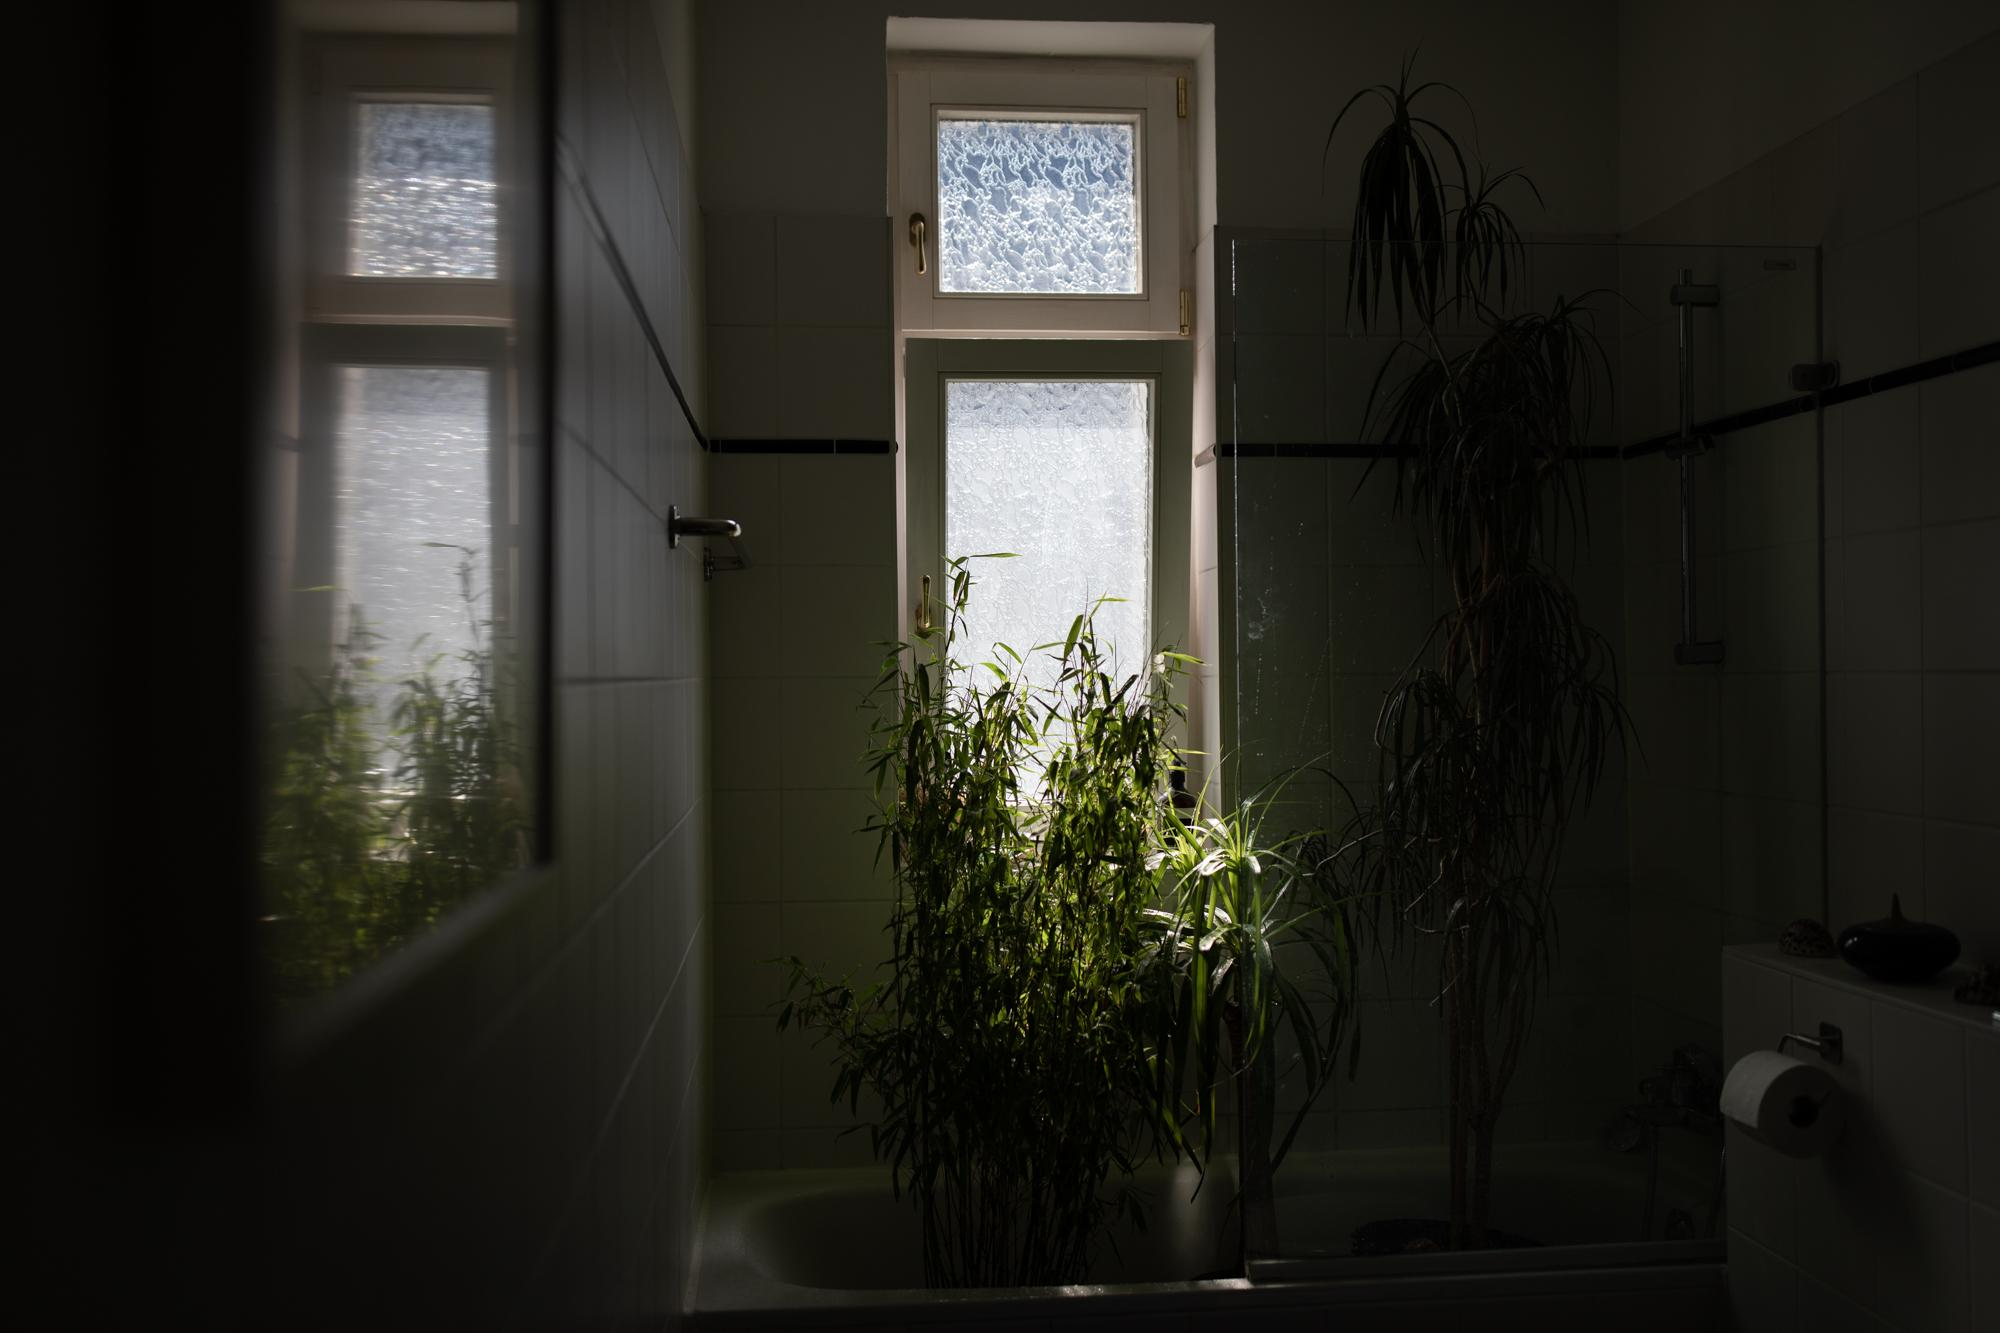 DAY 38 of the first lockdown Rainforest feeling in my bathroom. Berlin, Germany, April 28, 2020.